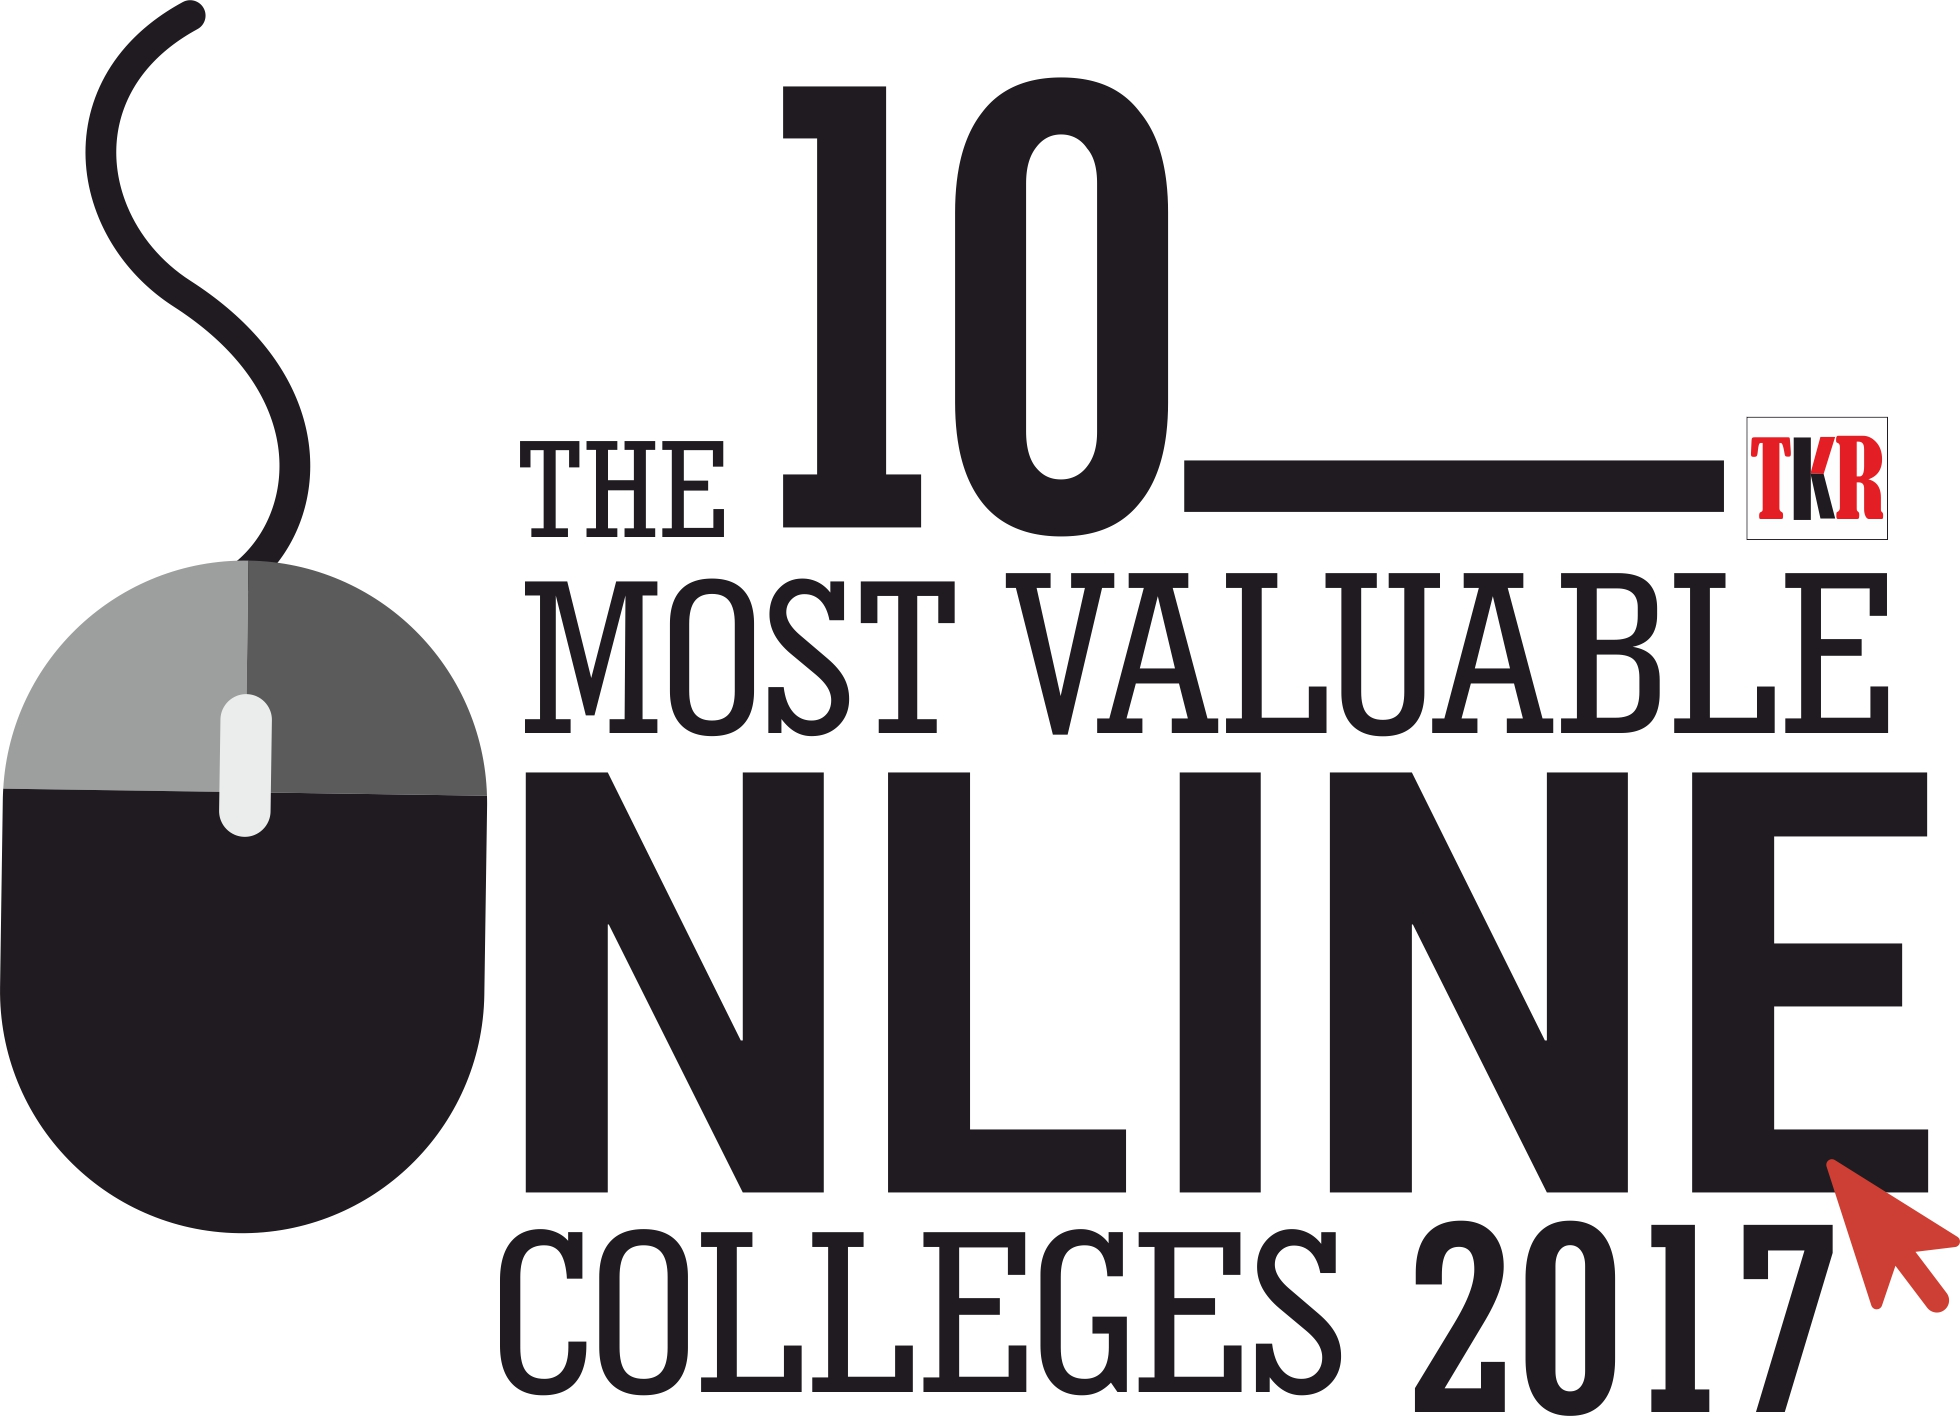 Sessions College Recognized in Top 10 Most Valuable Colleges List